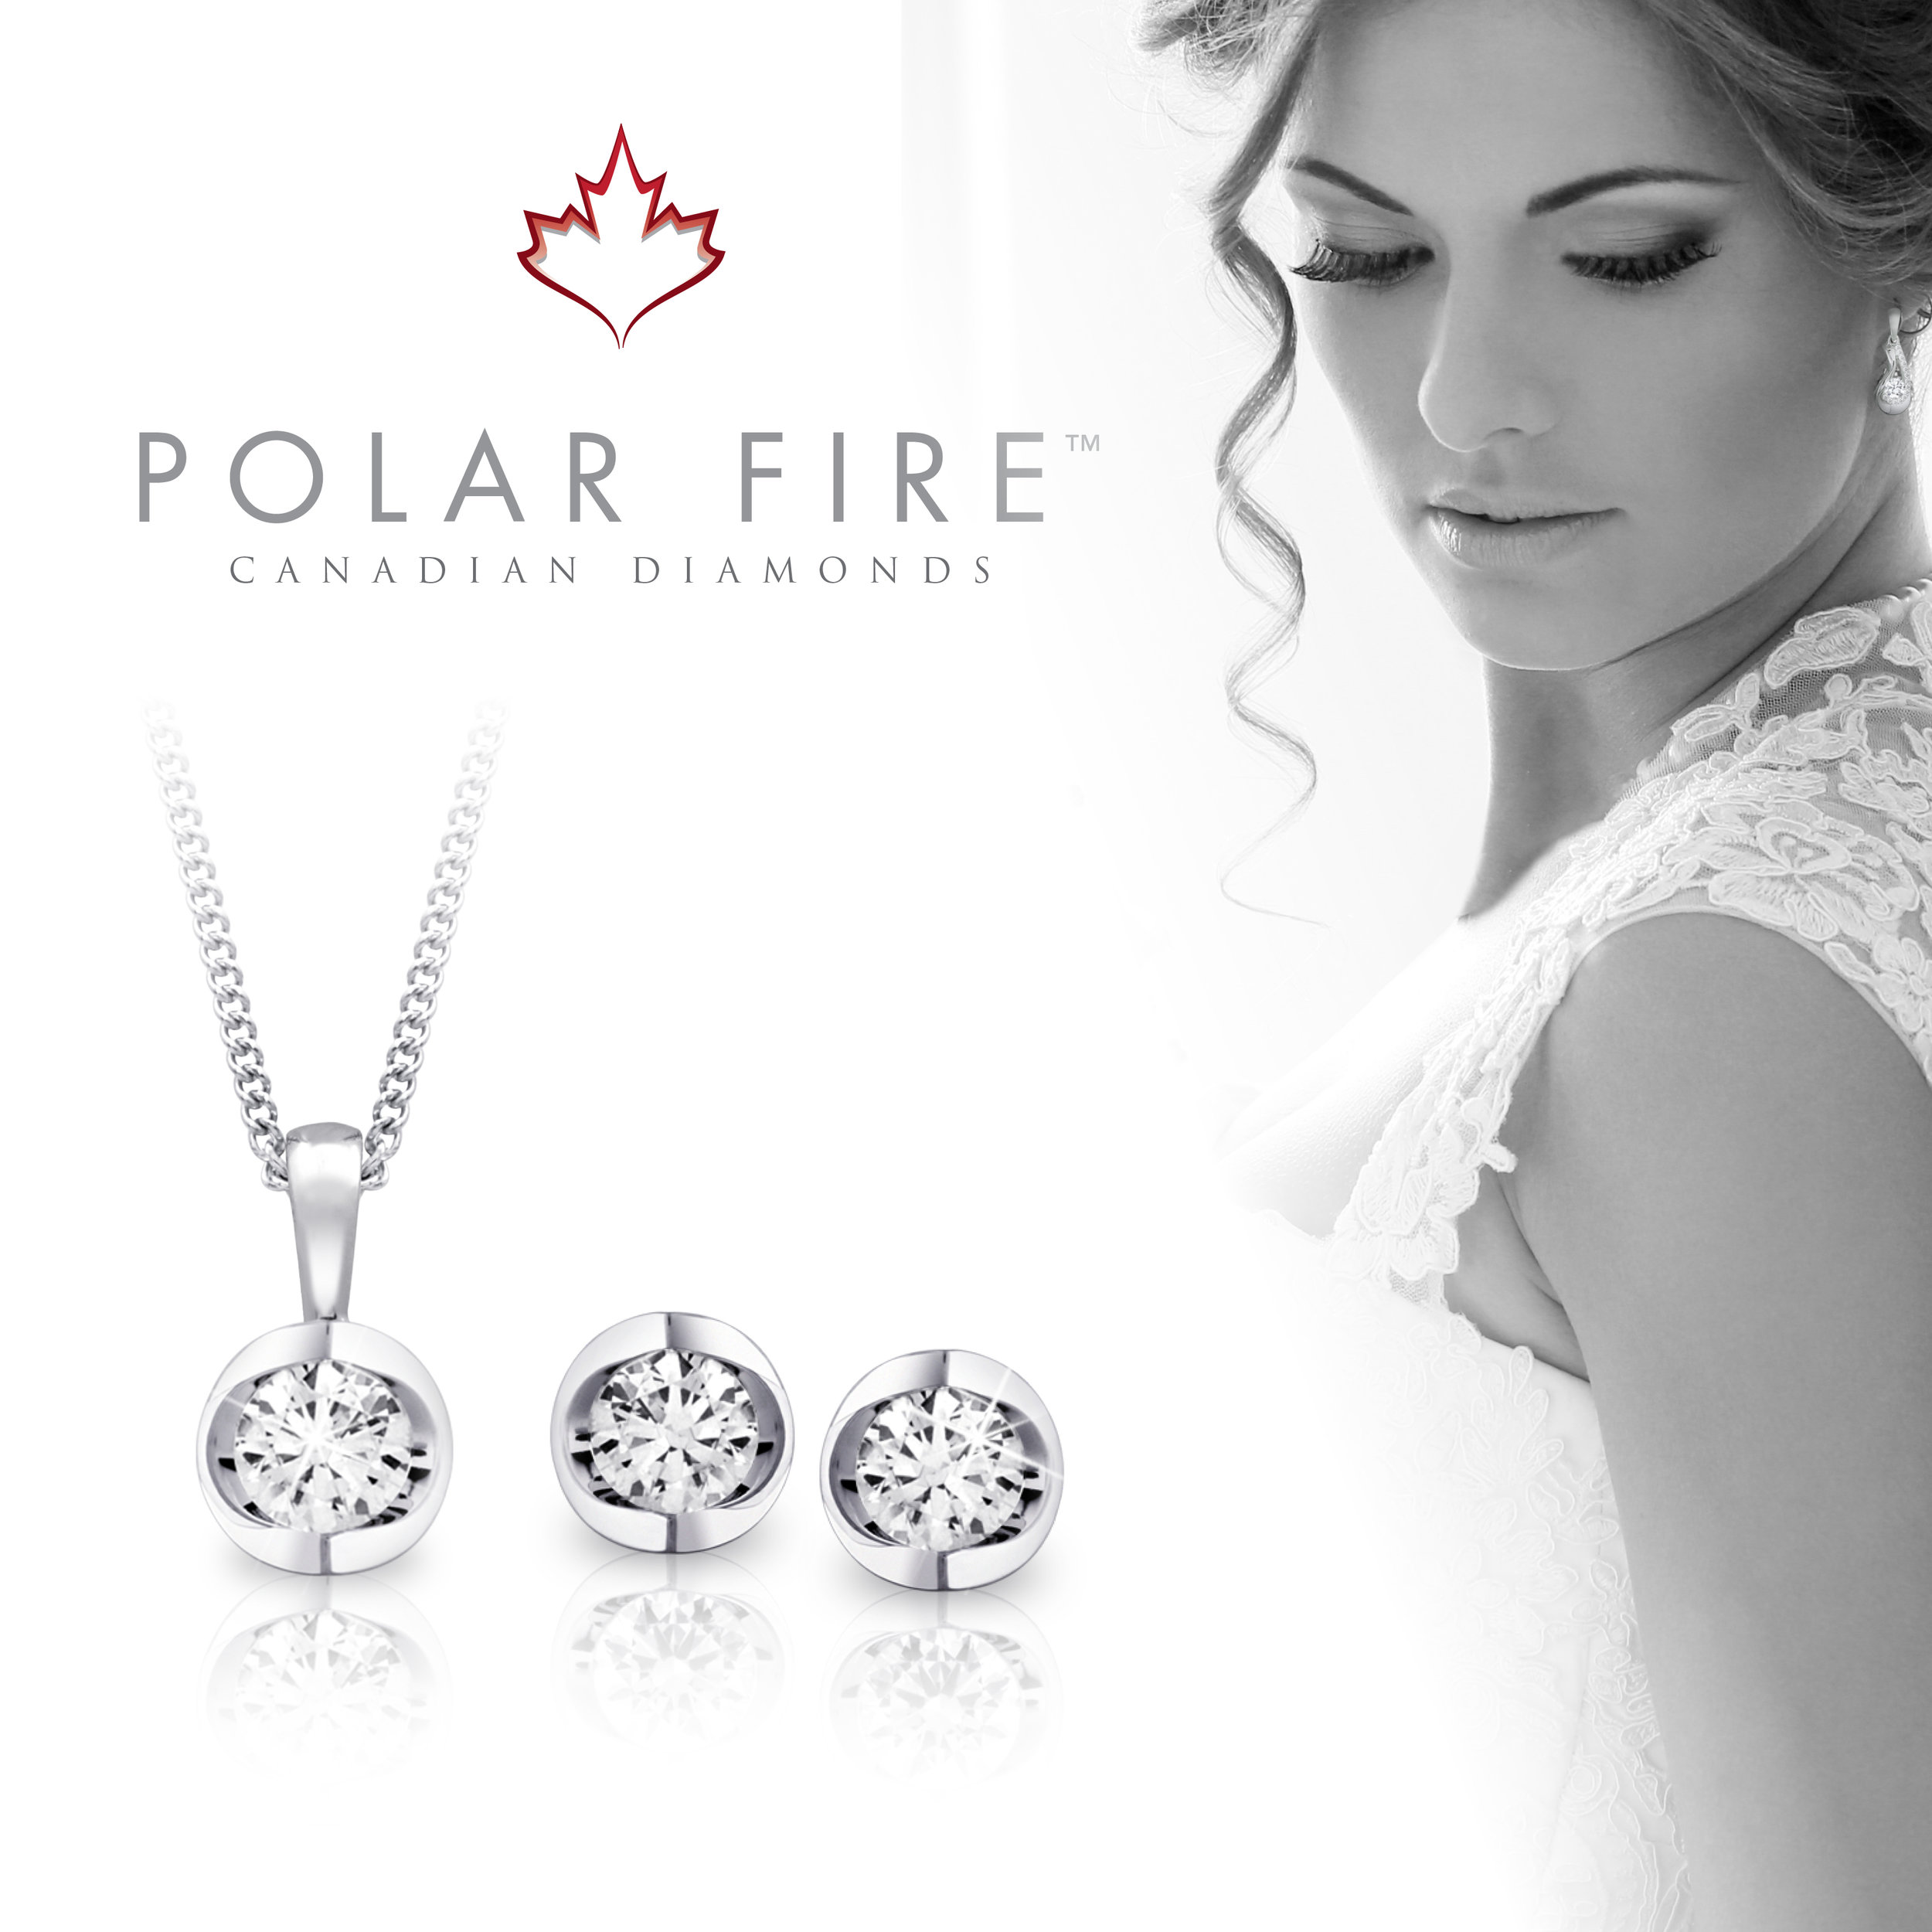 Canadian Diamond Collection